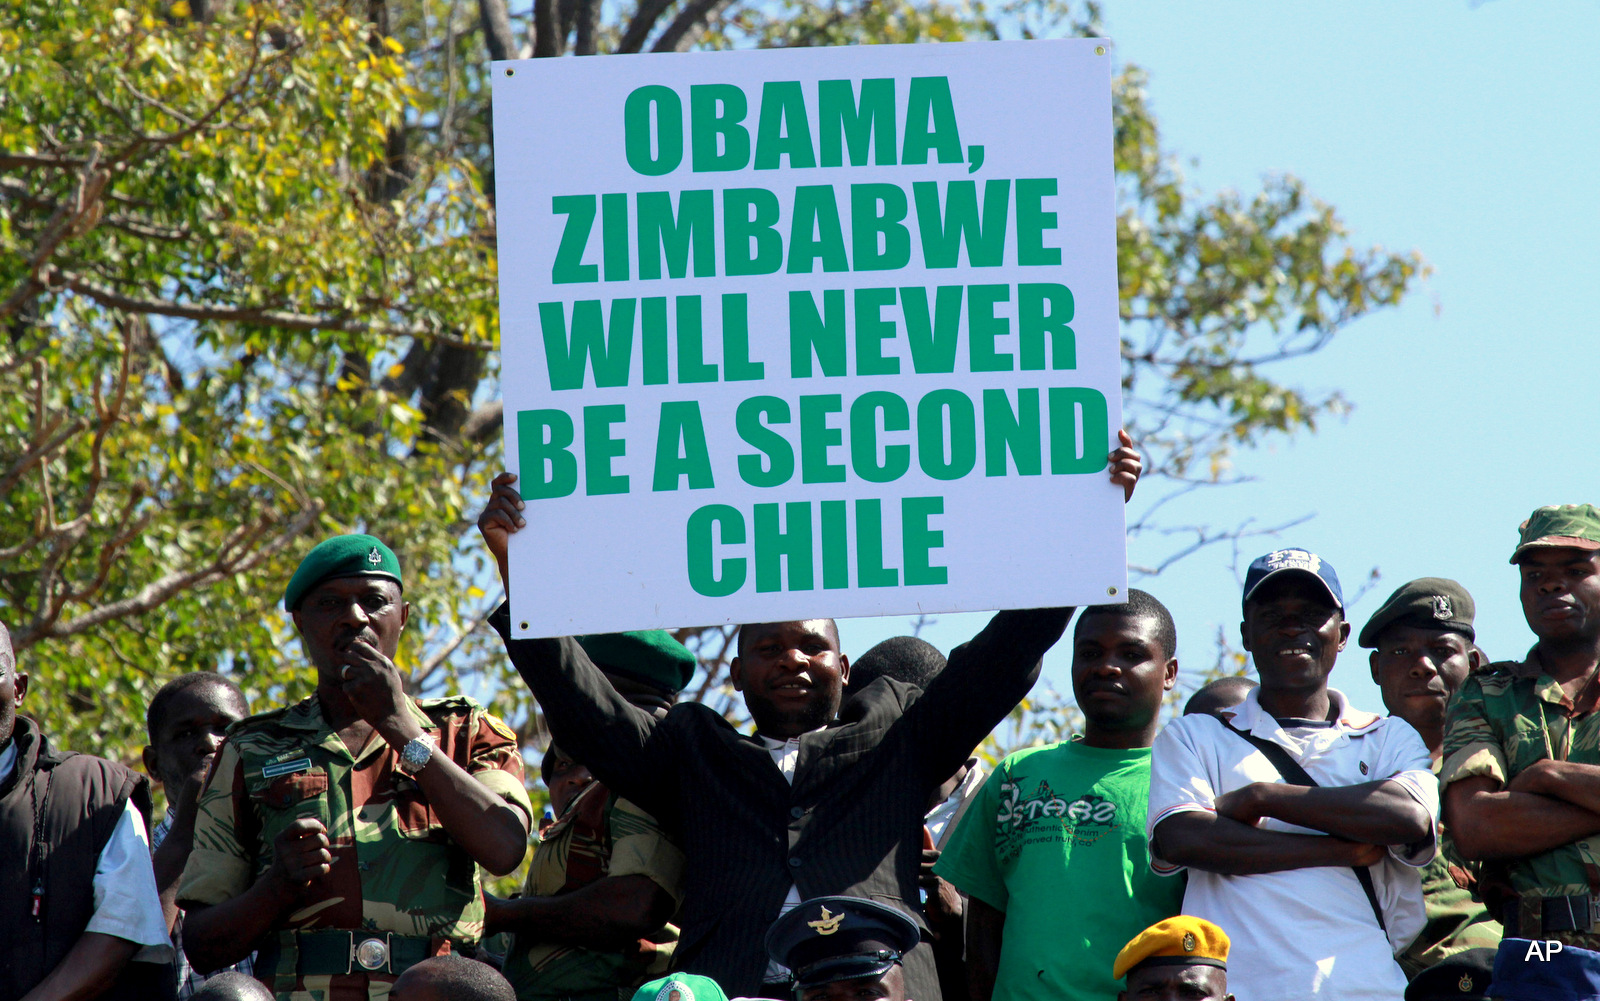 A man holds a poster with a message for United States President Barack Obama at Zimbabwe's Commemoration of Heroes day in Harare, Monday, Aug.12, 2013. Zimbabwean President elect Robert Mugabe was the guest speaker at the event. Mugabe recieved more than 60 percent of the vote in recent Presidential elections.